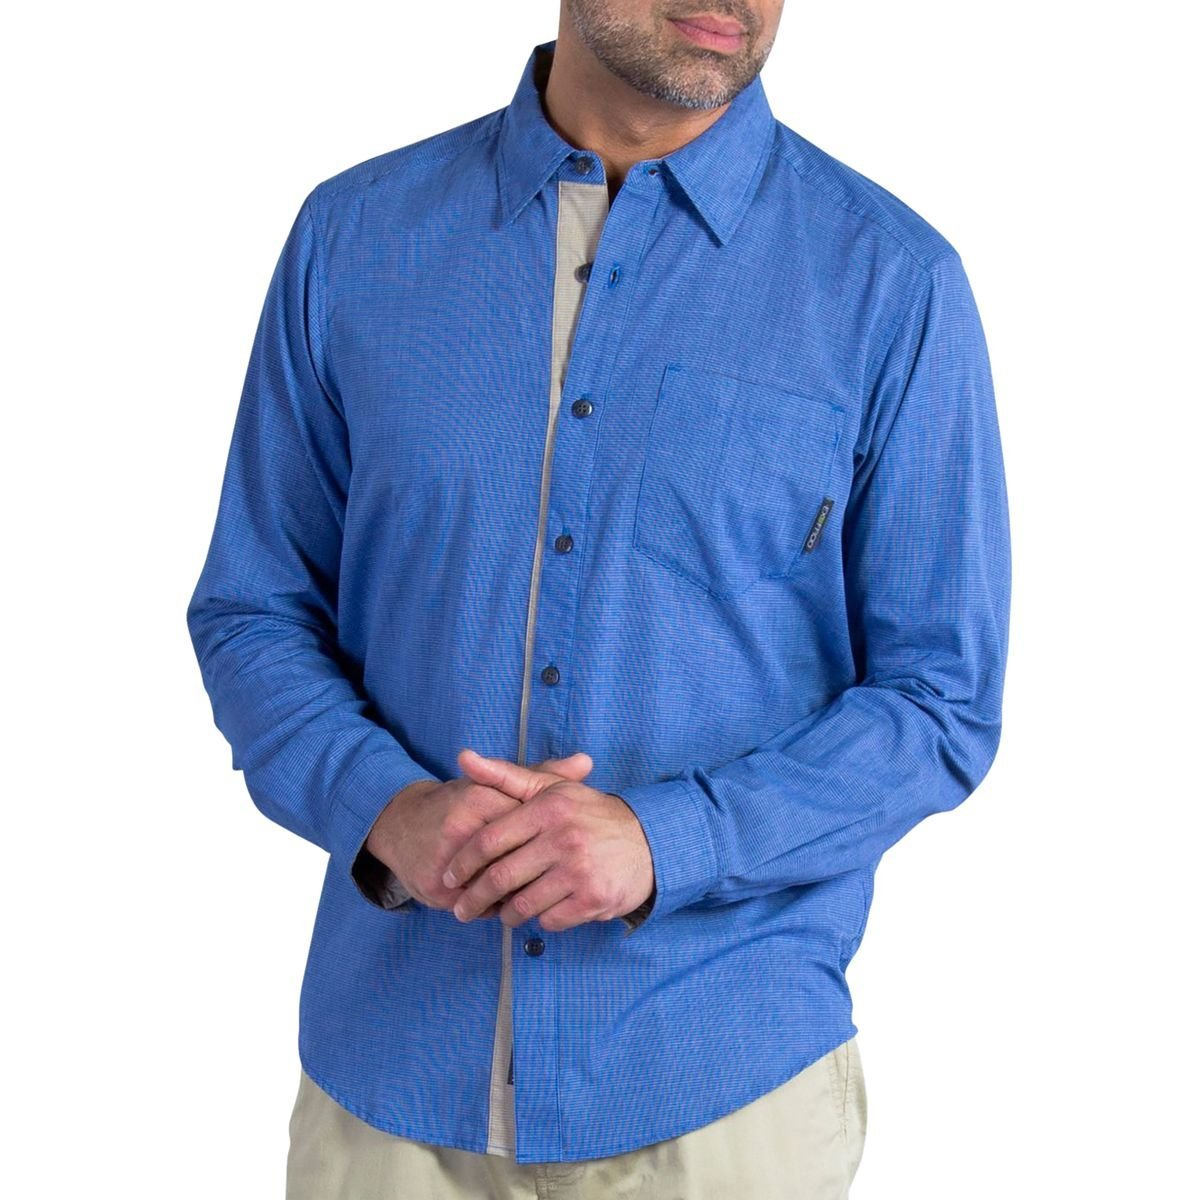 mosquito-repellent-clothing-mens